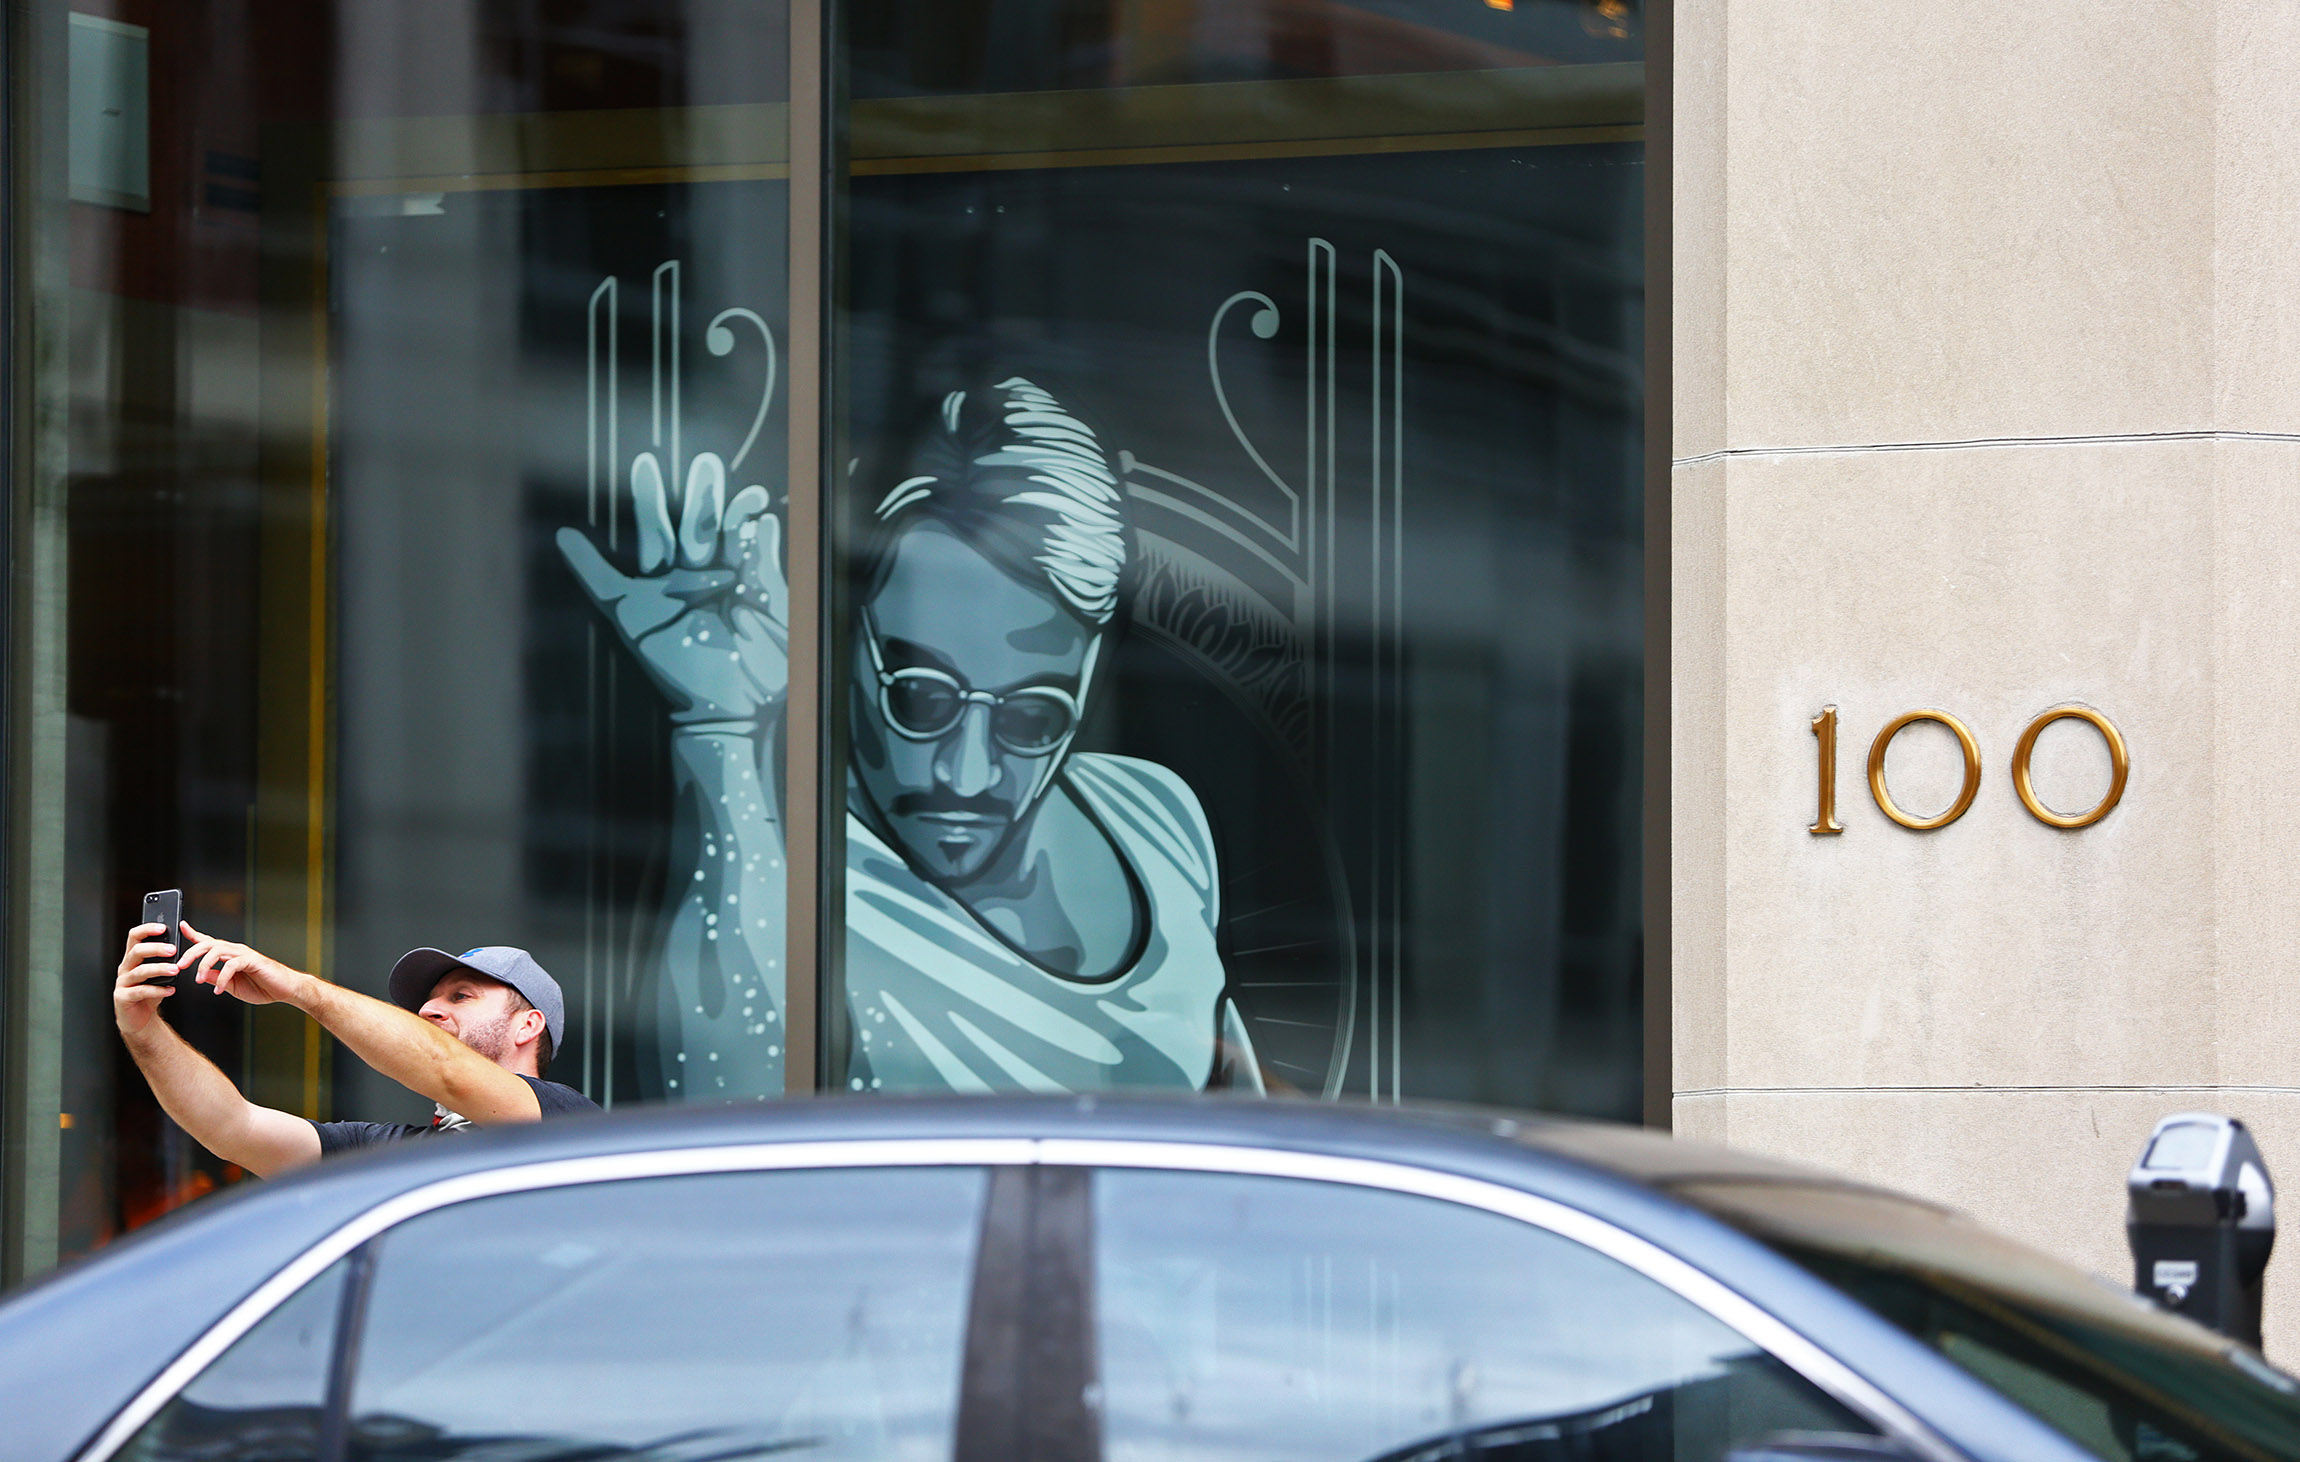 An unidentified man parks and takes a selfie next to the restaurant Nusr-Et, in Boston on Sept. 27.